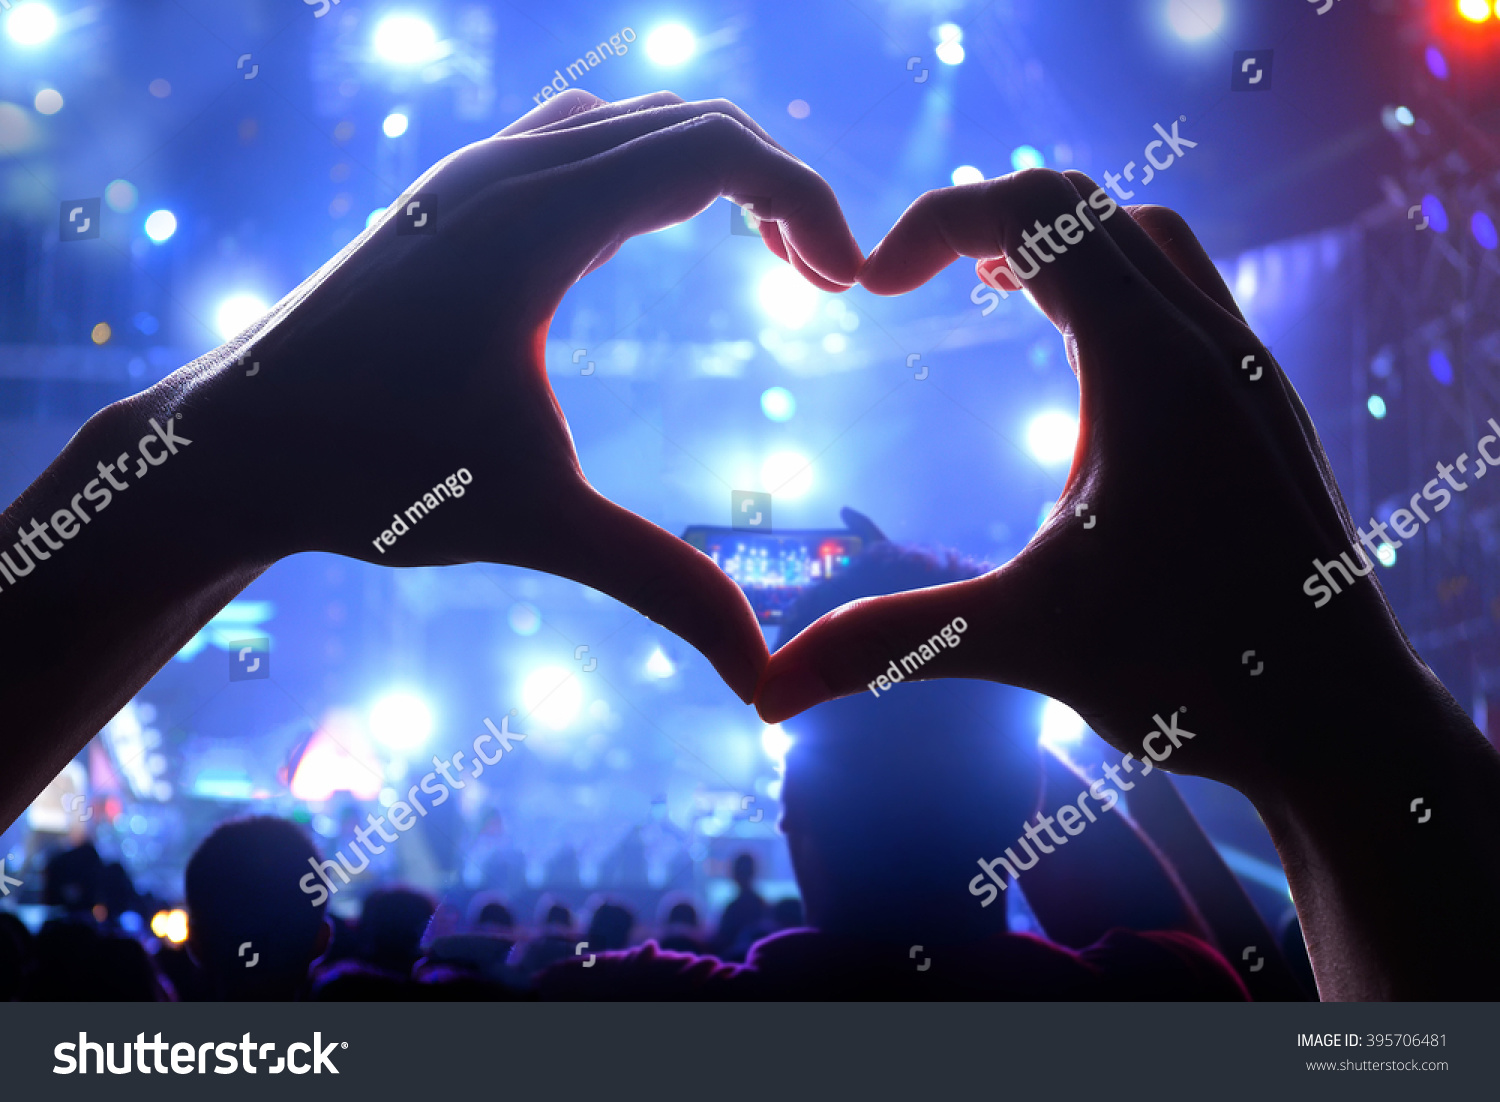 Royalty Free Silhouette Of A Heart Shaped Hands And